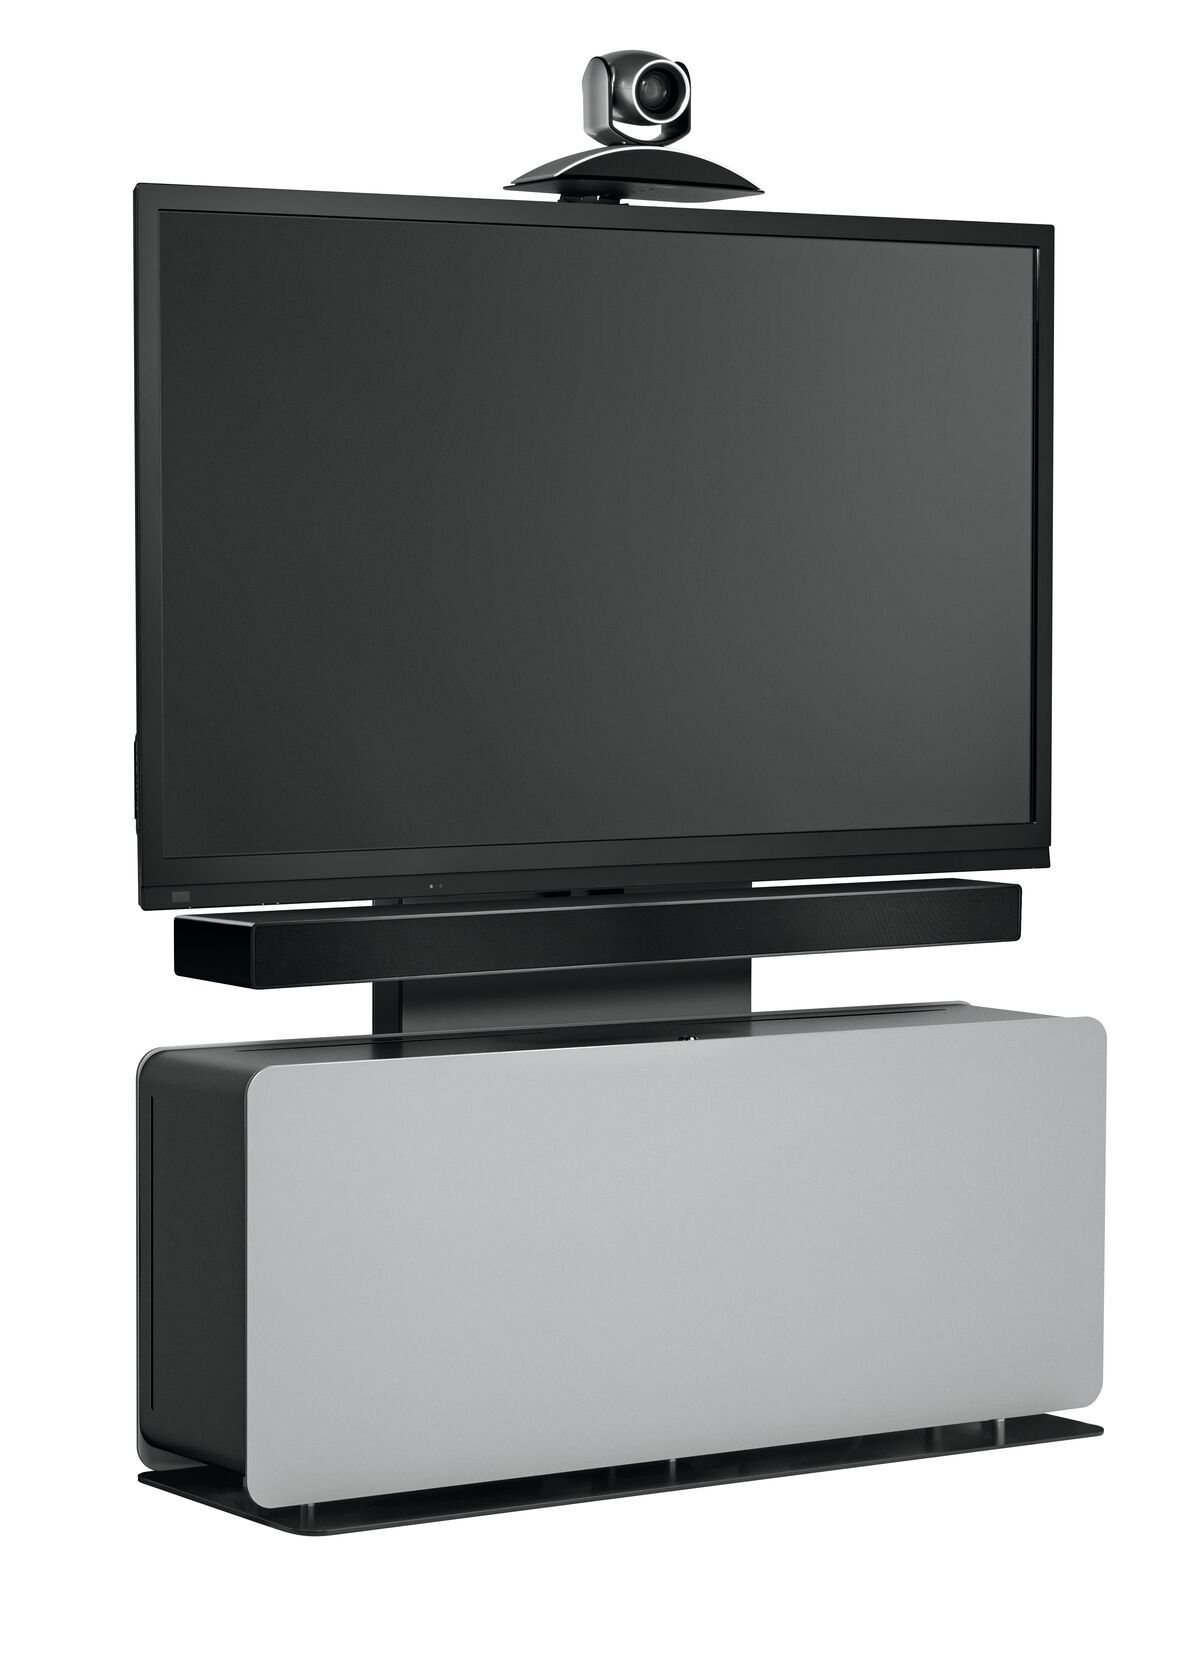 Vogel's PVF 4112 Video conferencing furniture silver - Application